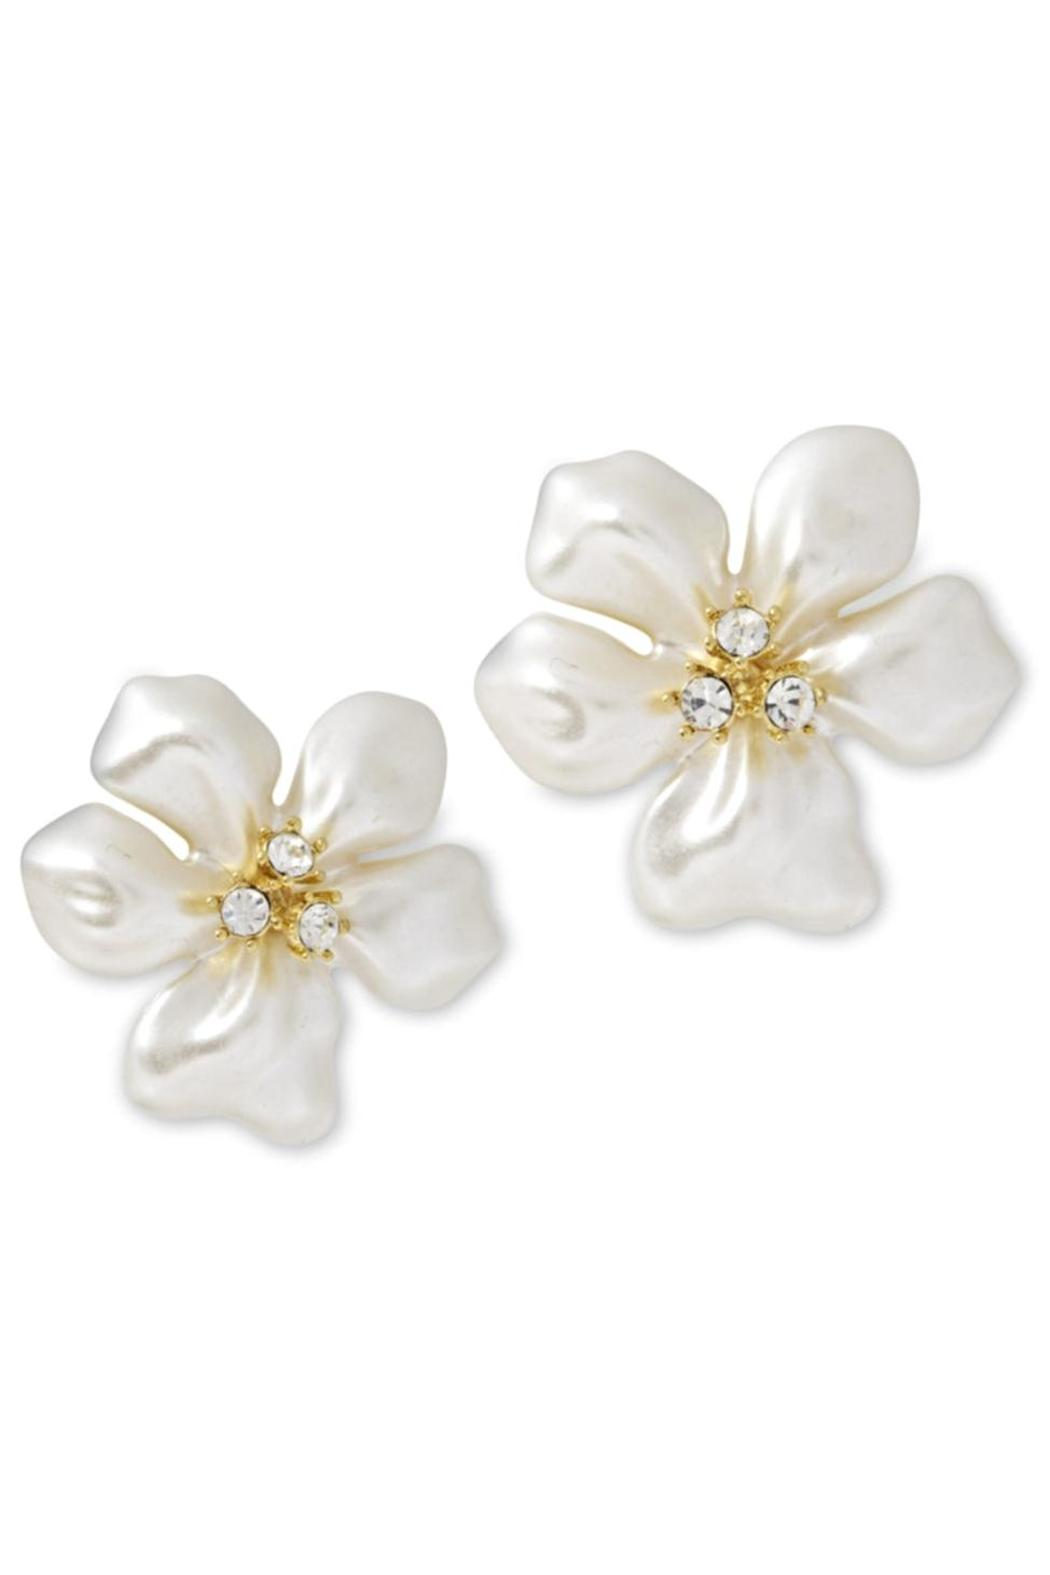 Kenneth Jay Lane Pearl Flower Earrings From New Jersey By Le